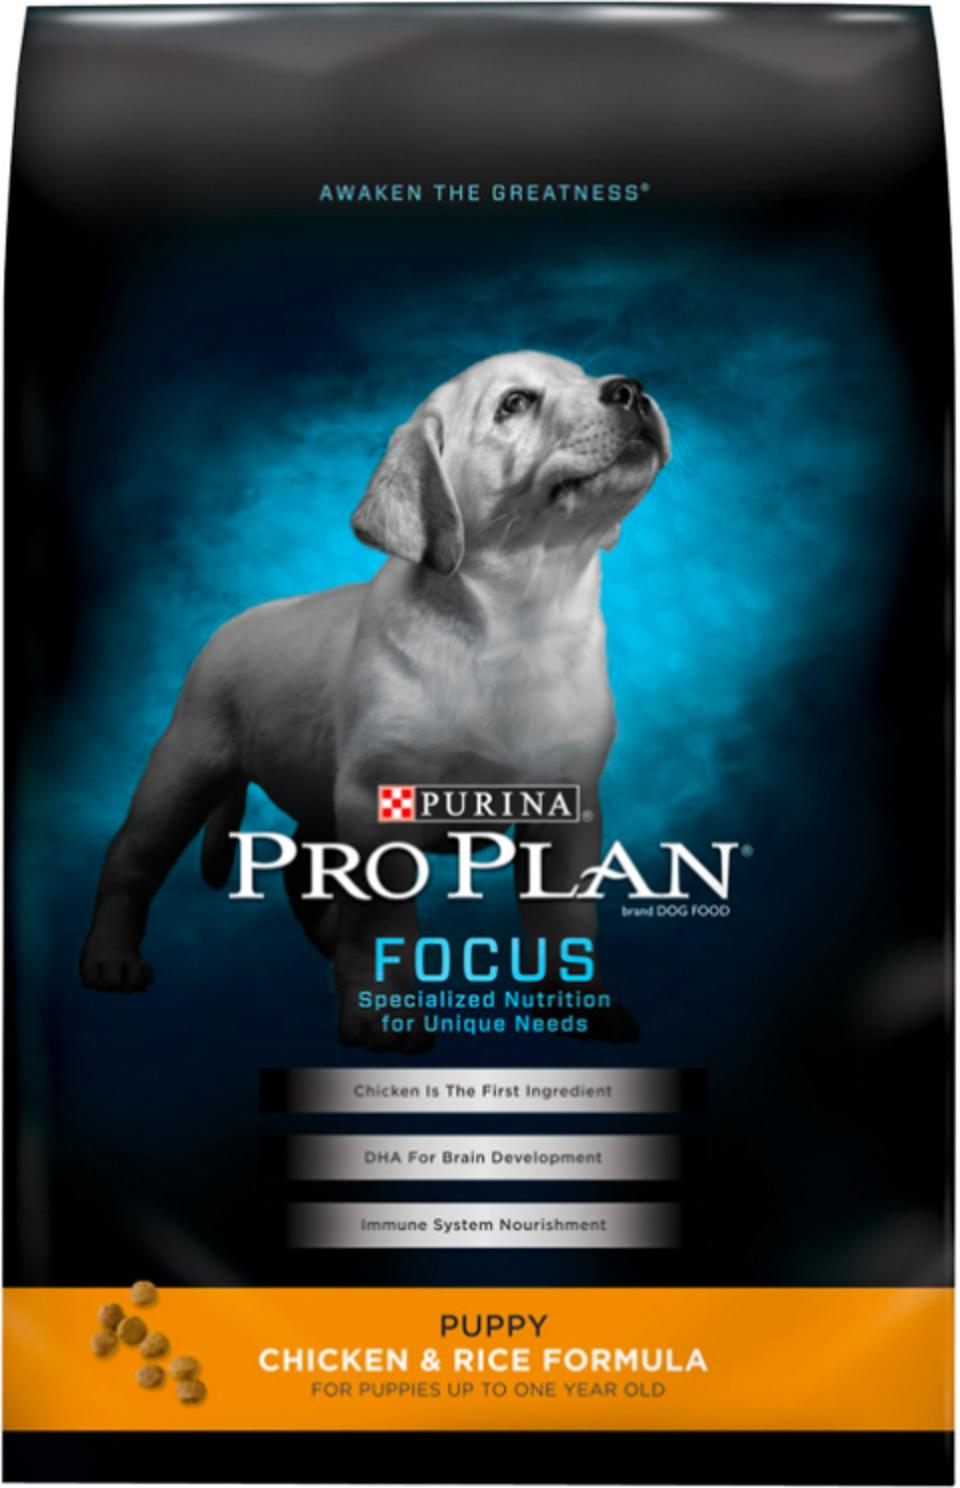 Purina Pro Plan Focus Puppy Chicken & Rice Formula Dry Dog Food, 34-lb. Bag